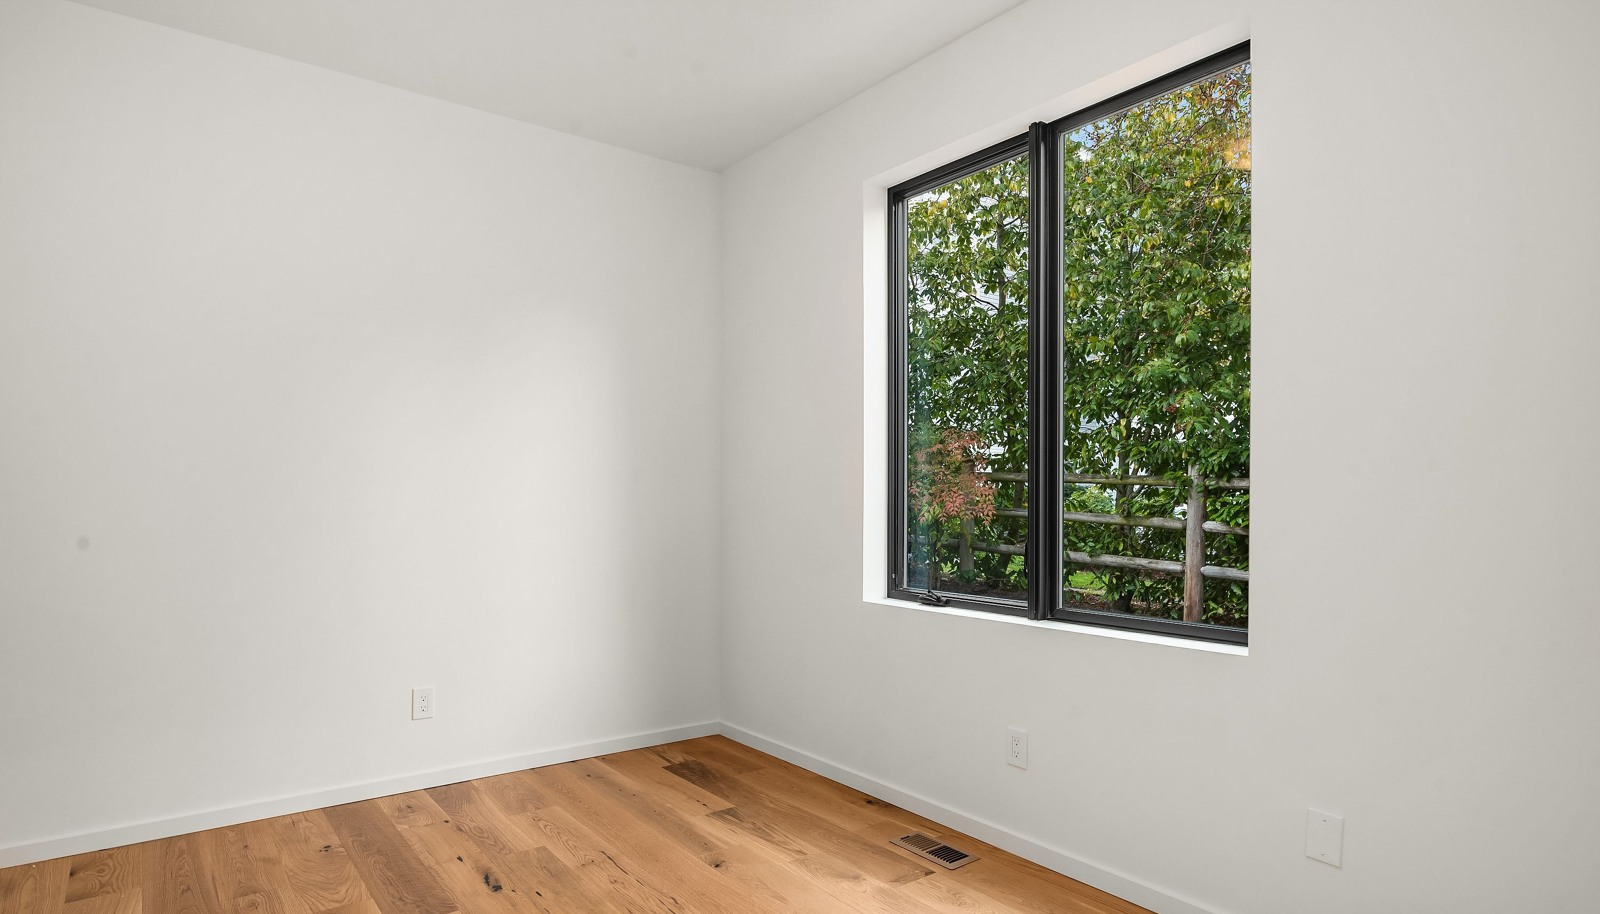 The main level is completed with two bedrooms and a full bath.